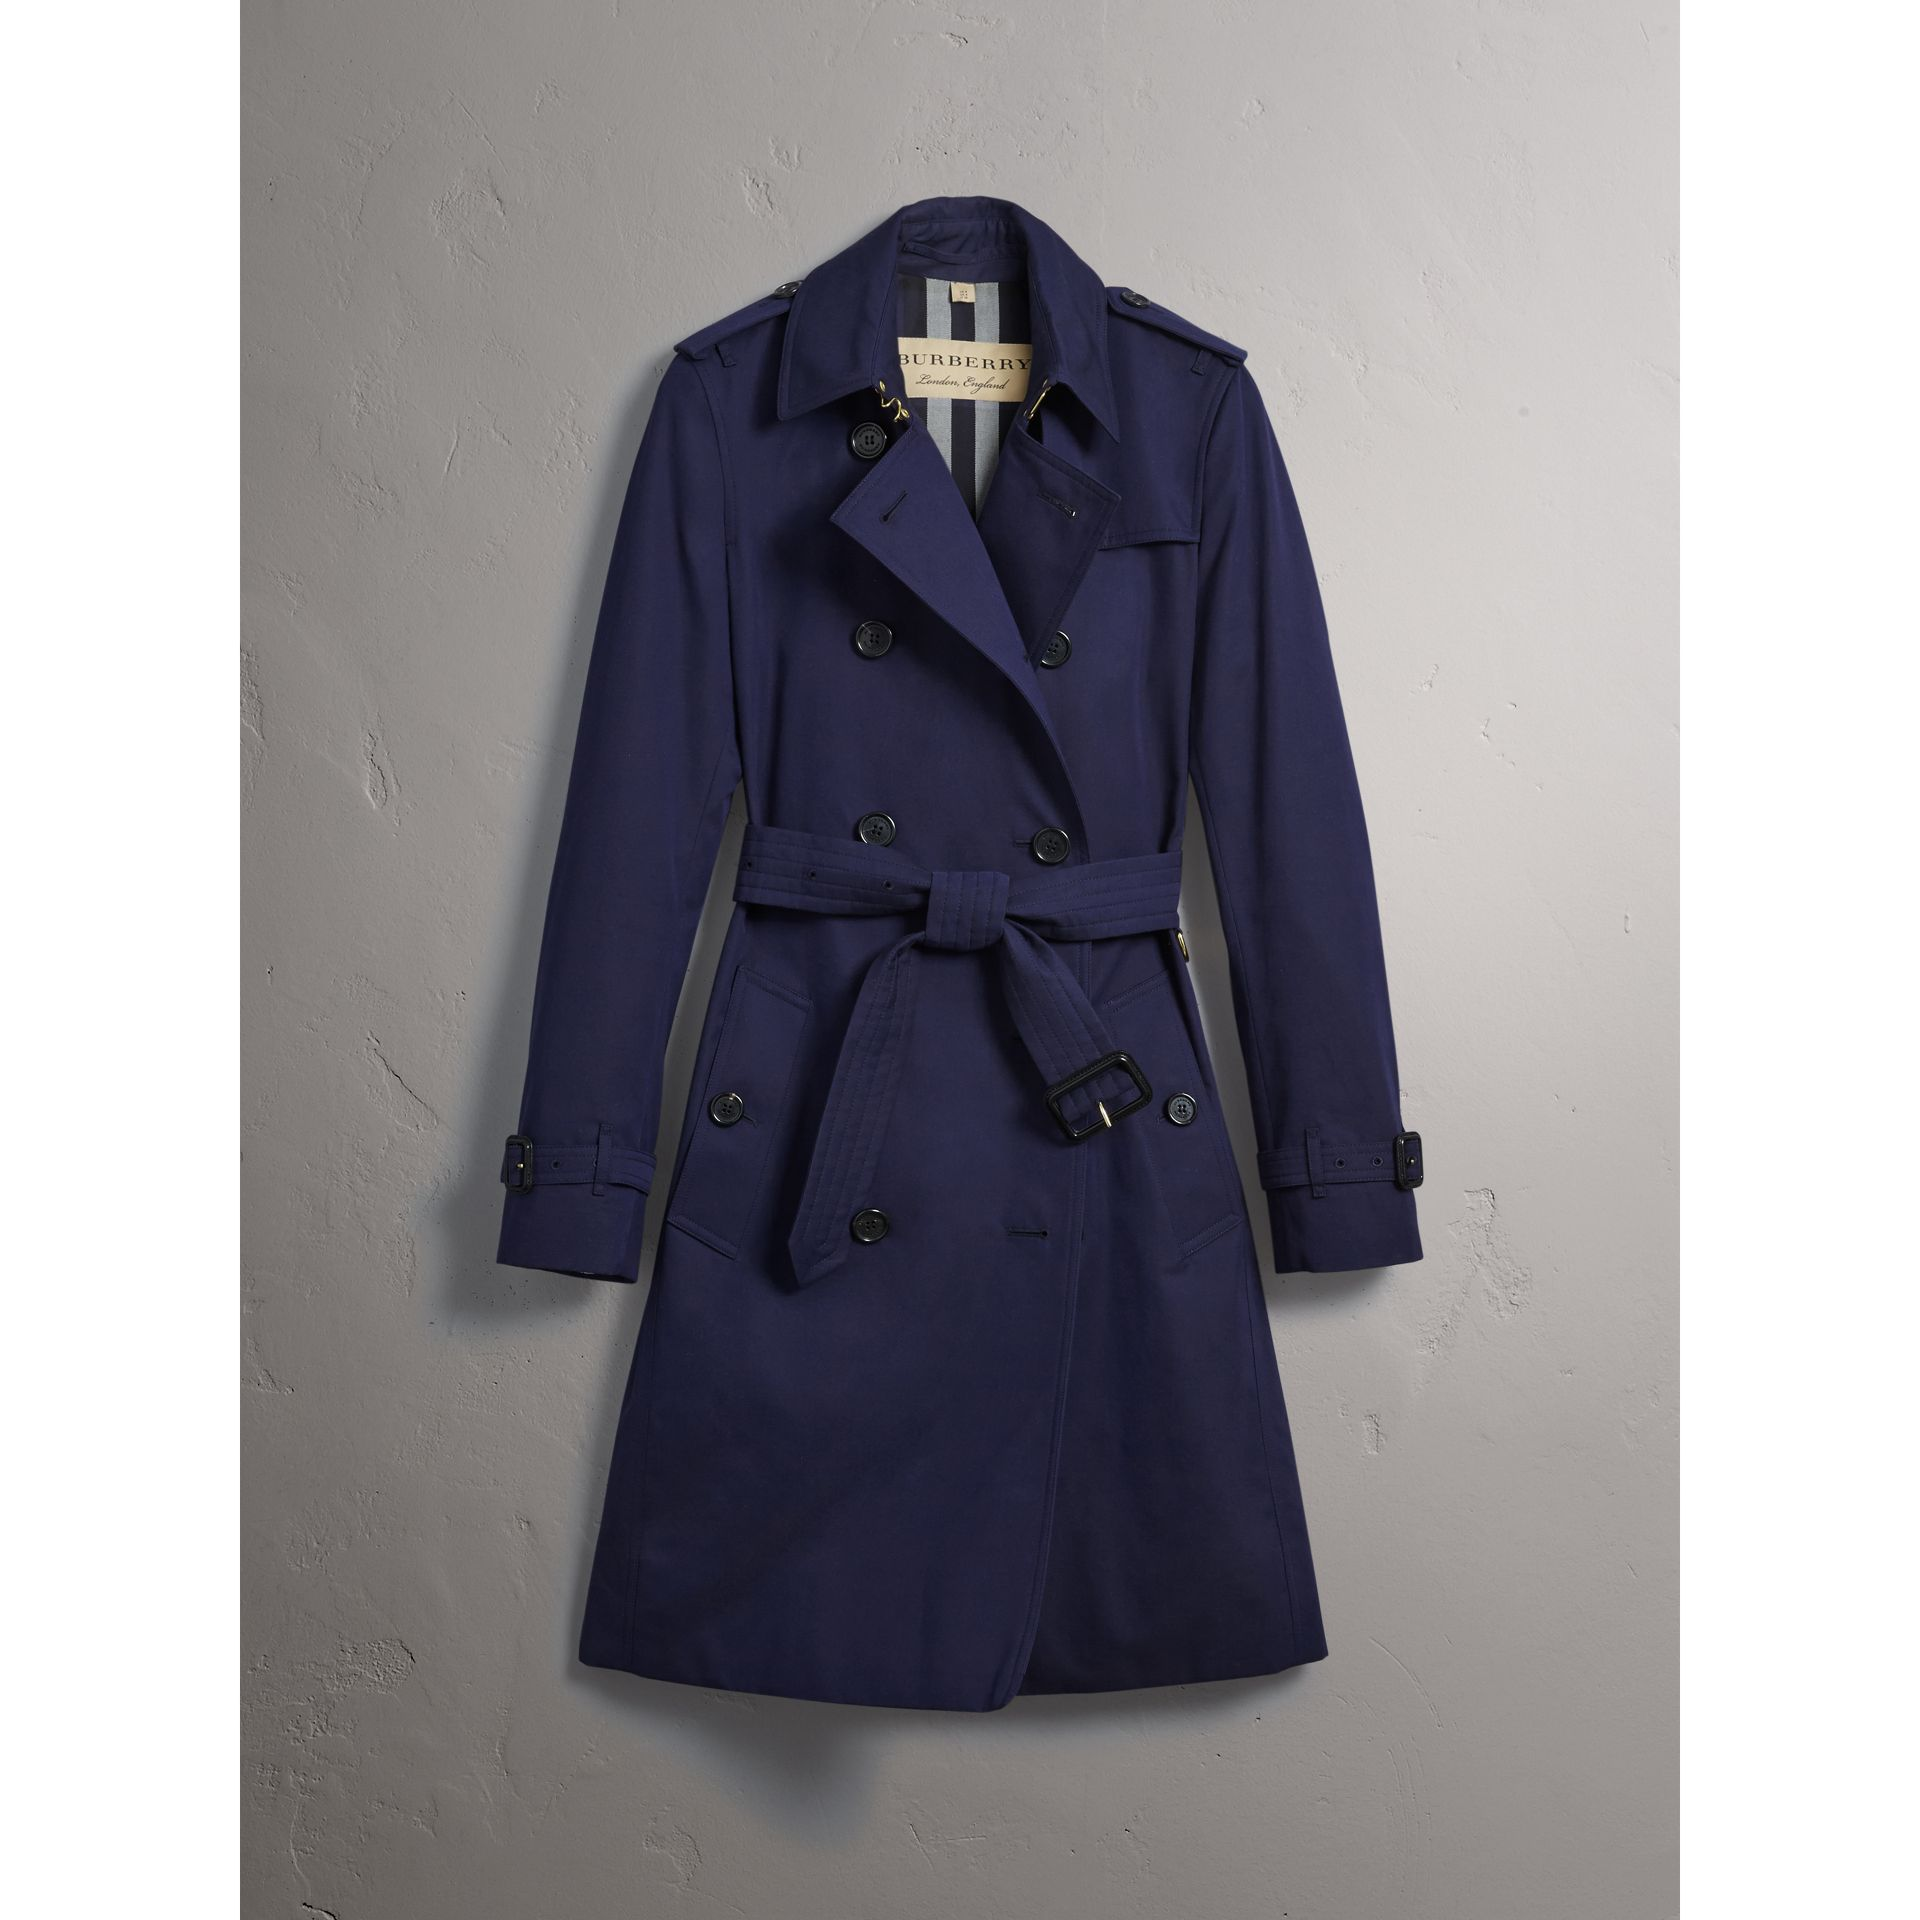 Cotton Gabardine Trench Coat in Blueberry - Women | Burberry Canada - gallery image 4